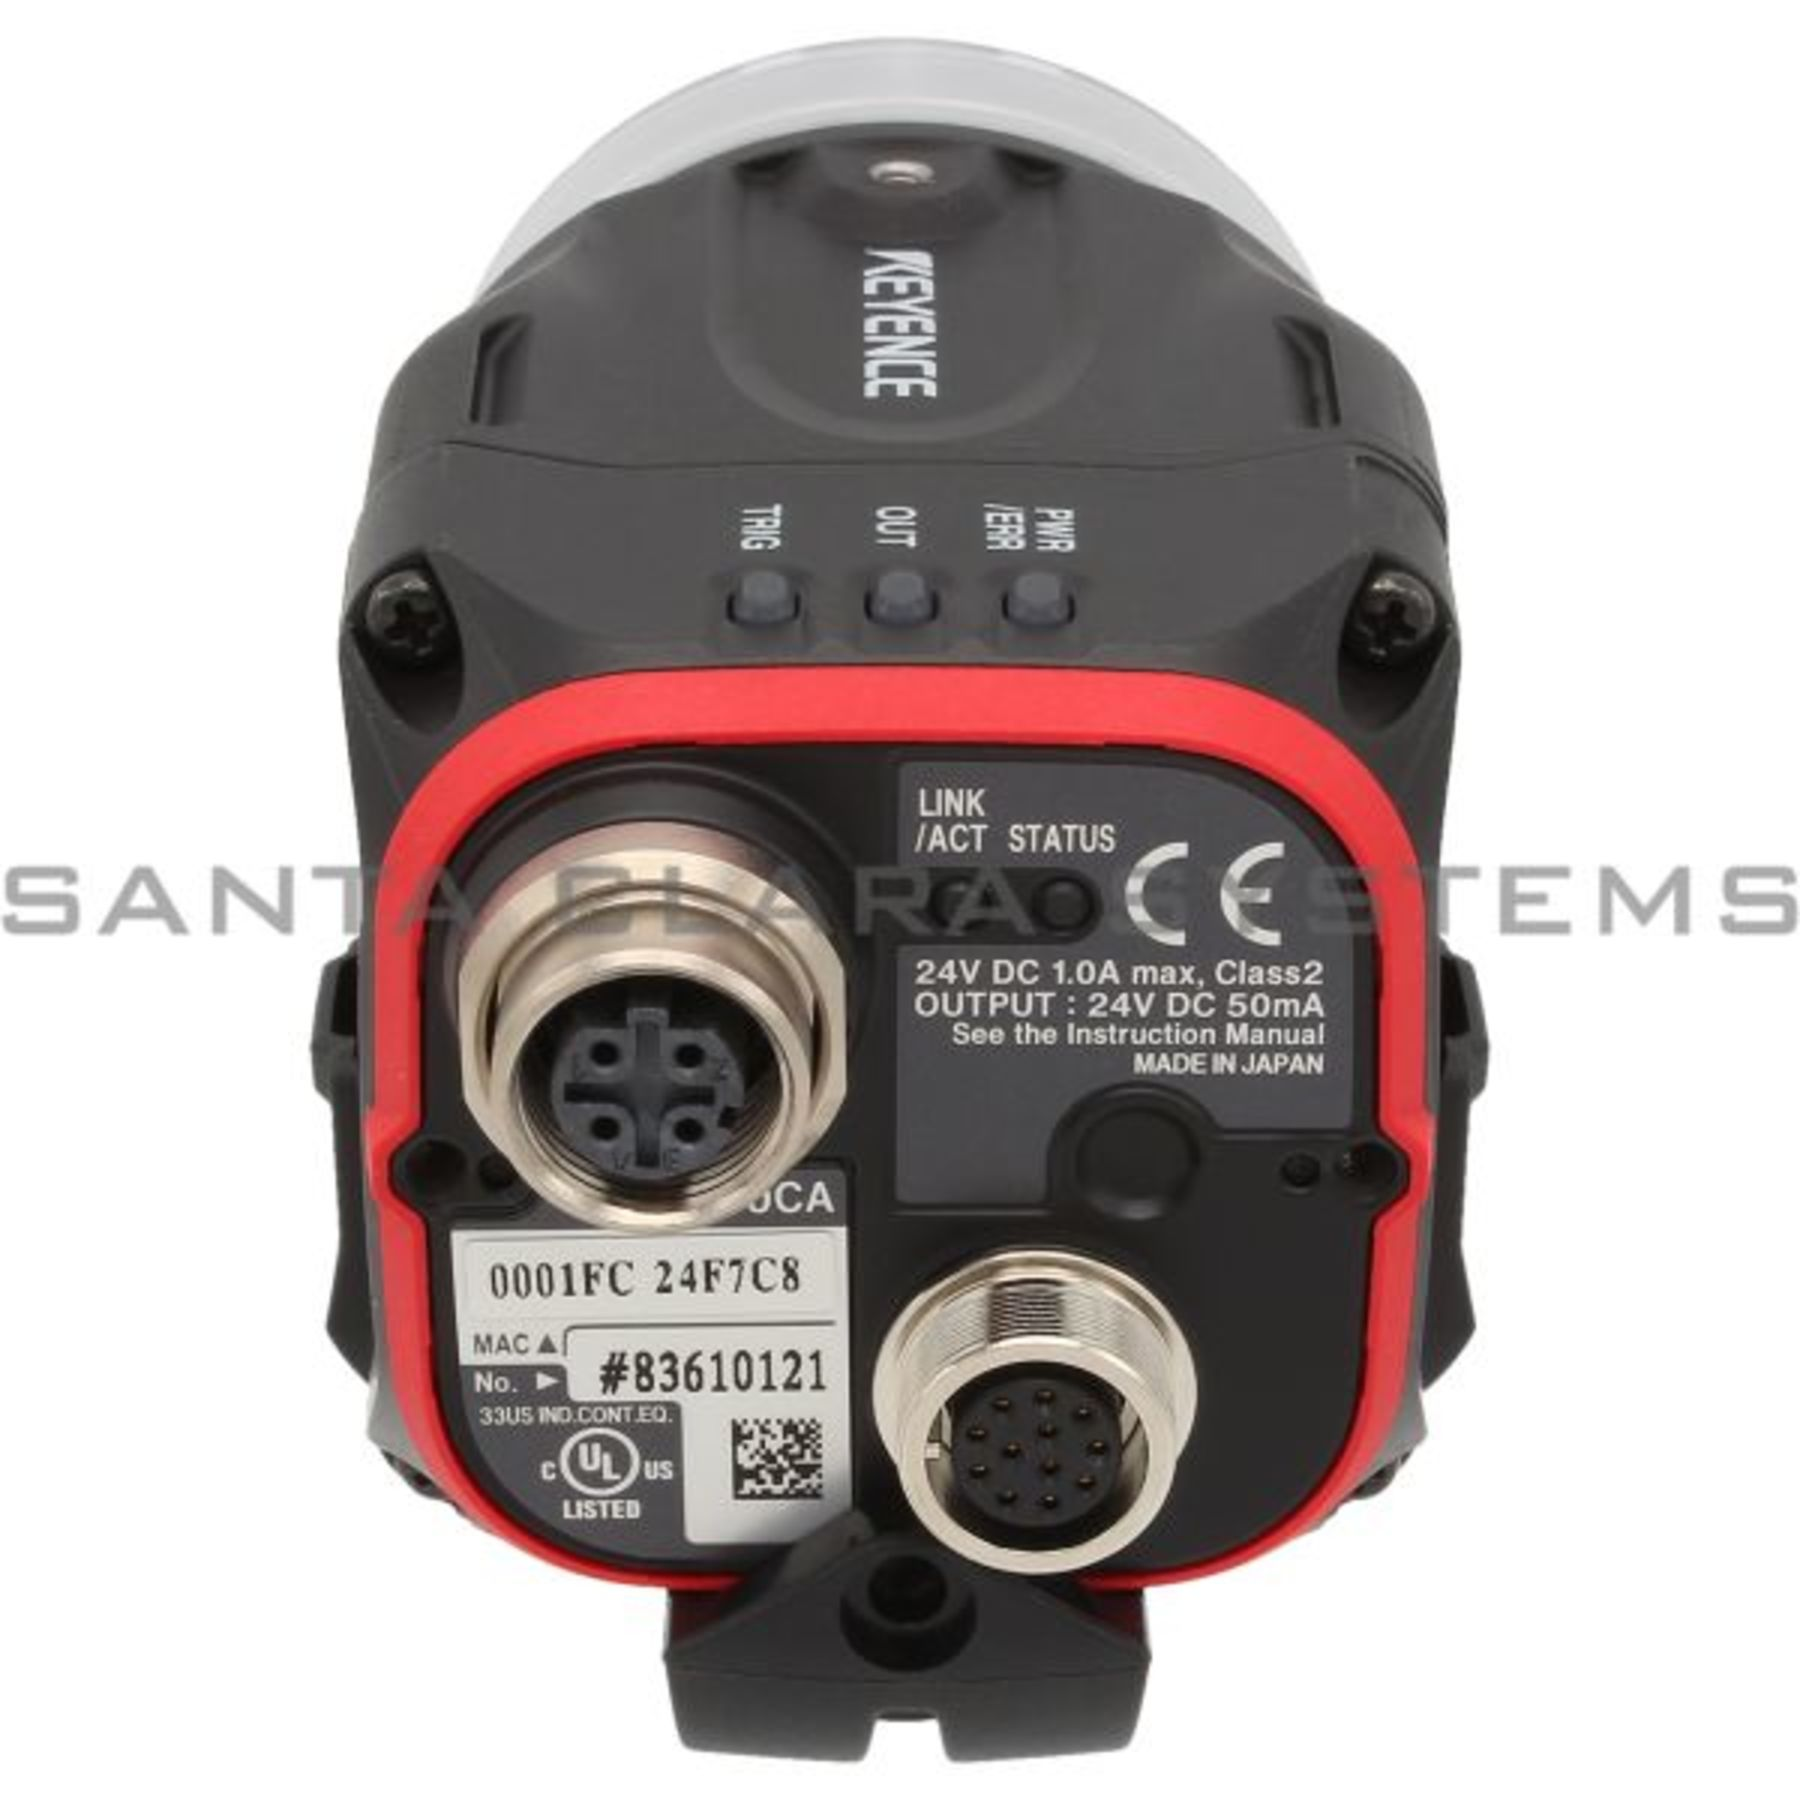 IV-500CA Vision Sensor Head In-Stock  Ships Today - Santa Clara Systems